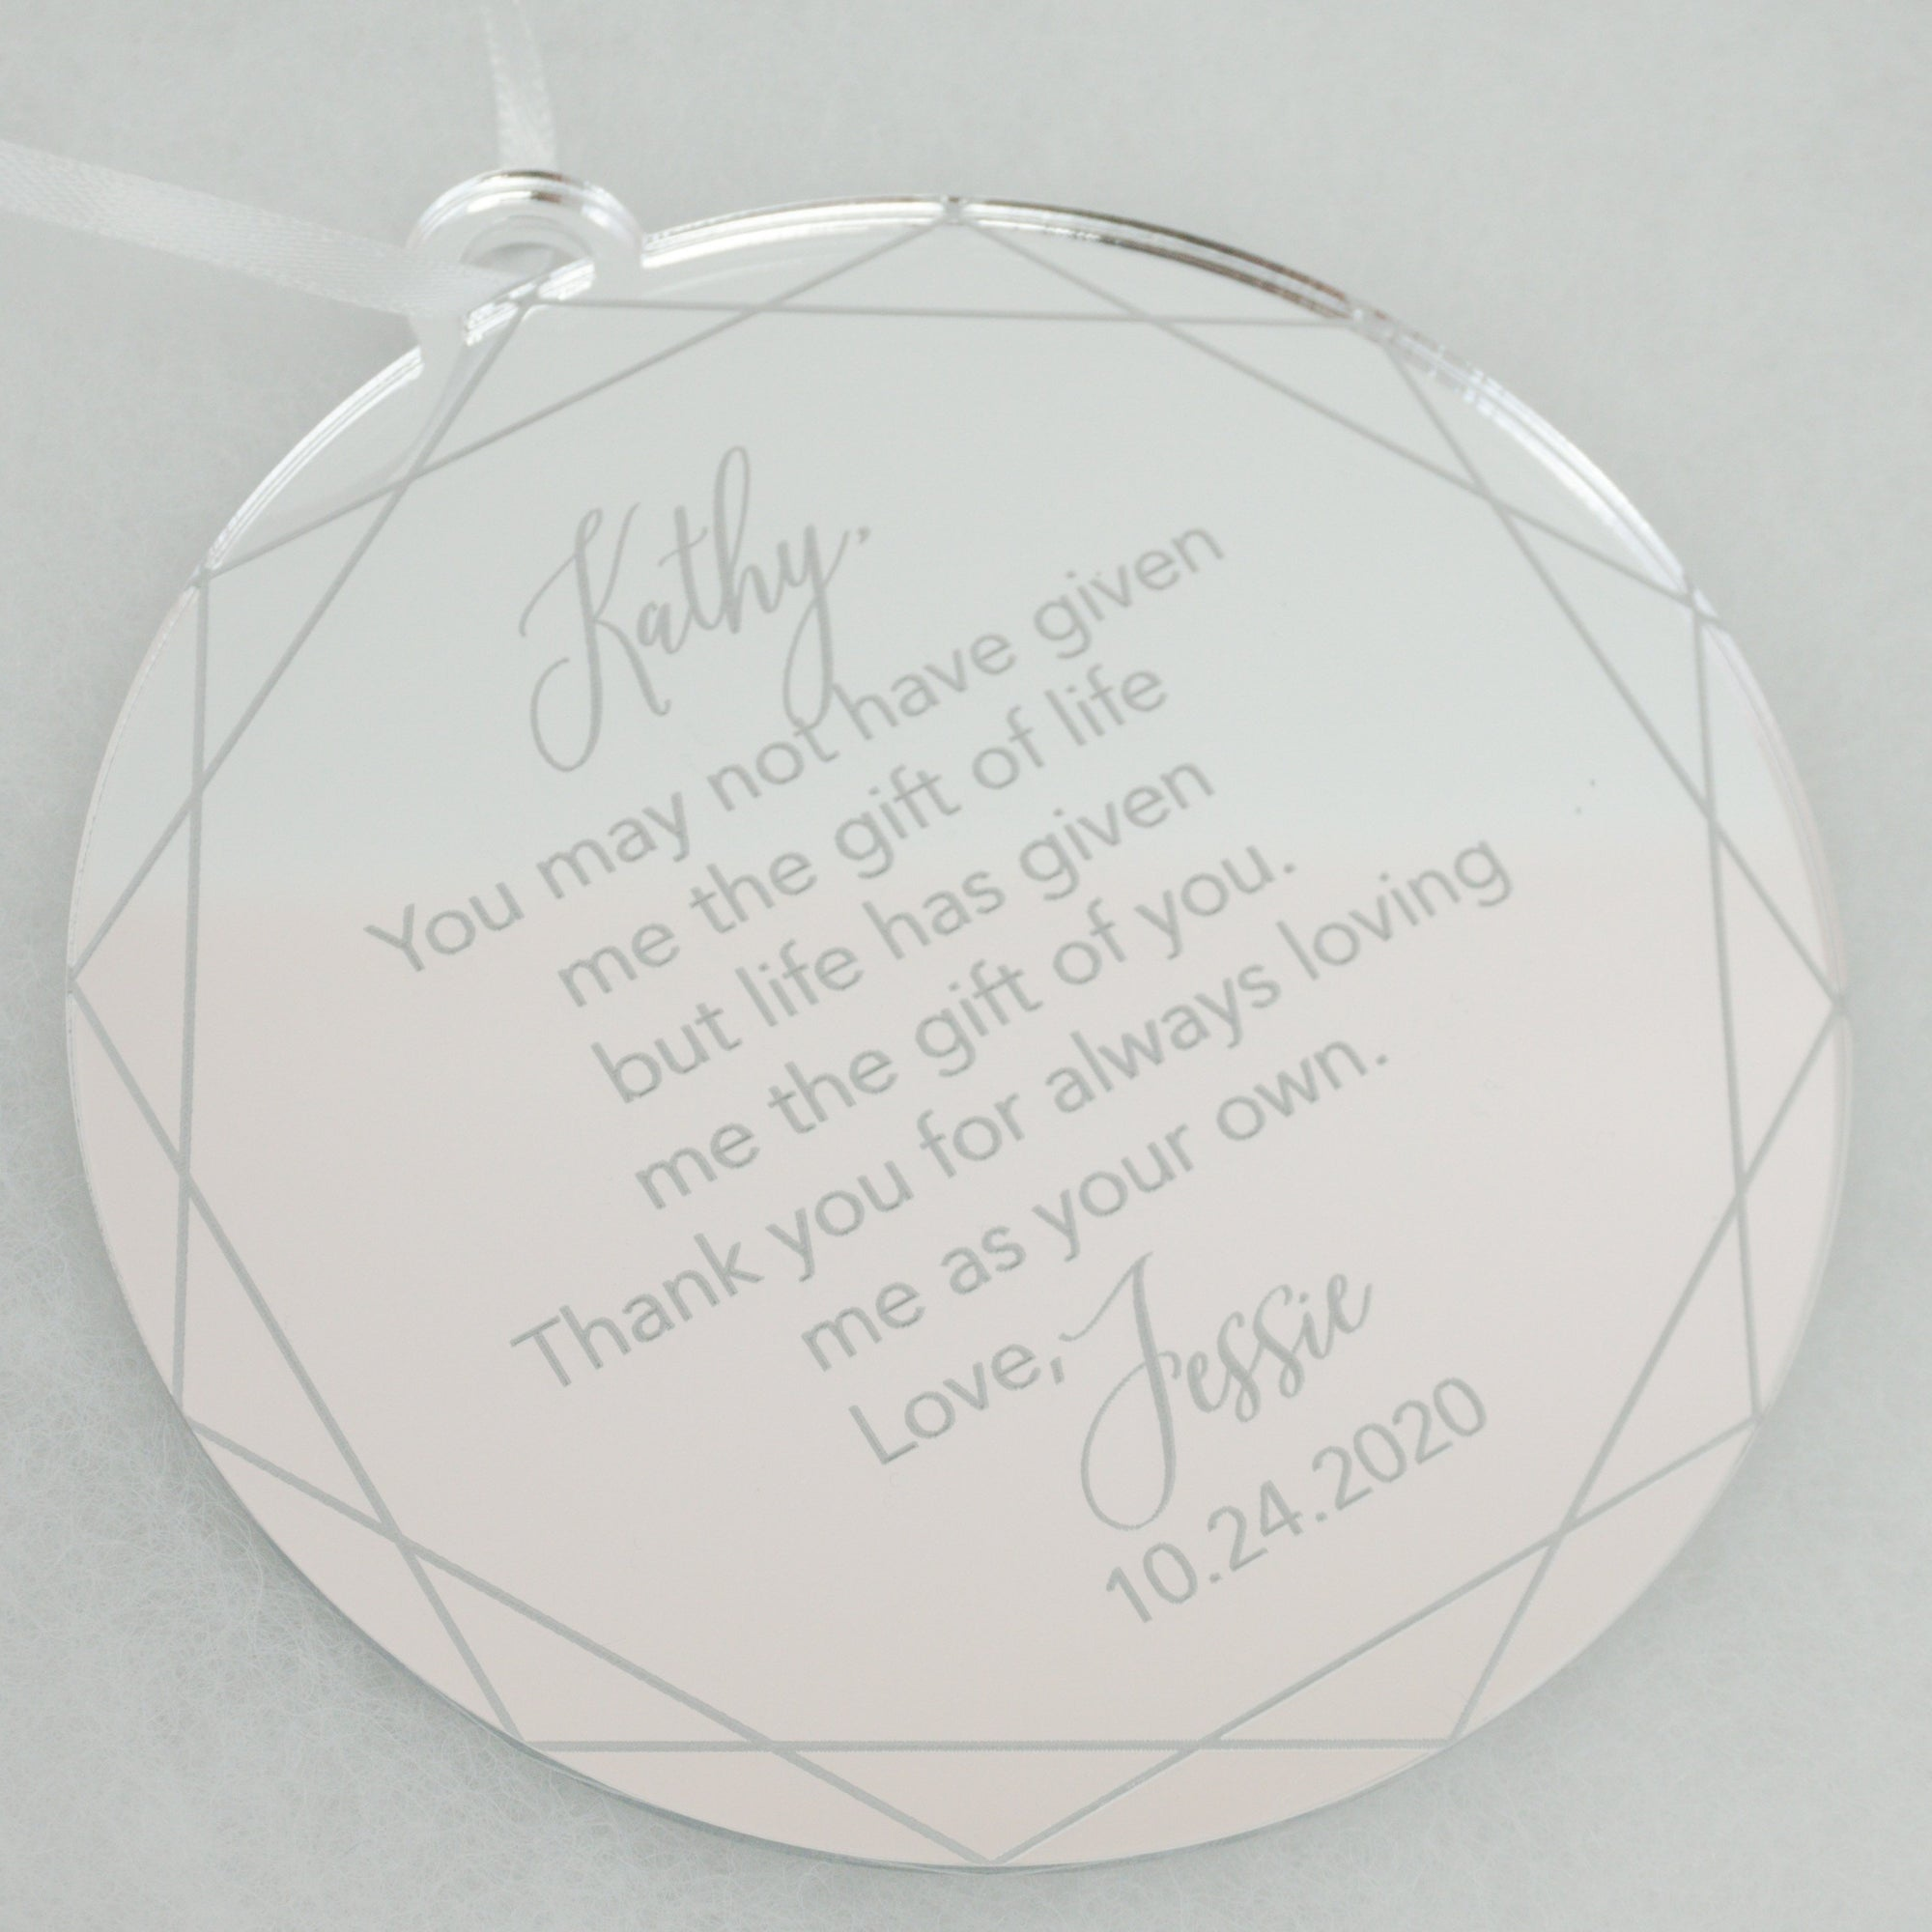 Thank You for Always Loving Me as Your Own Engraved Ornament